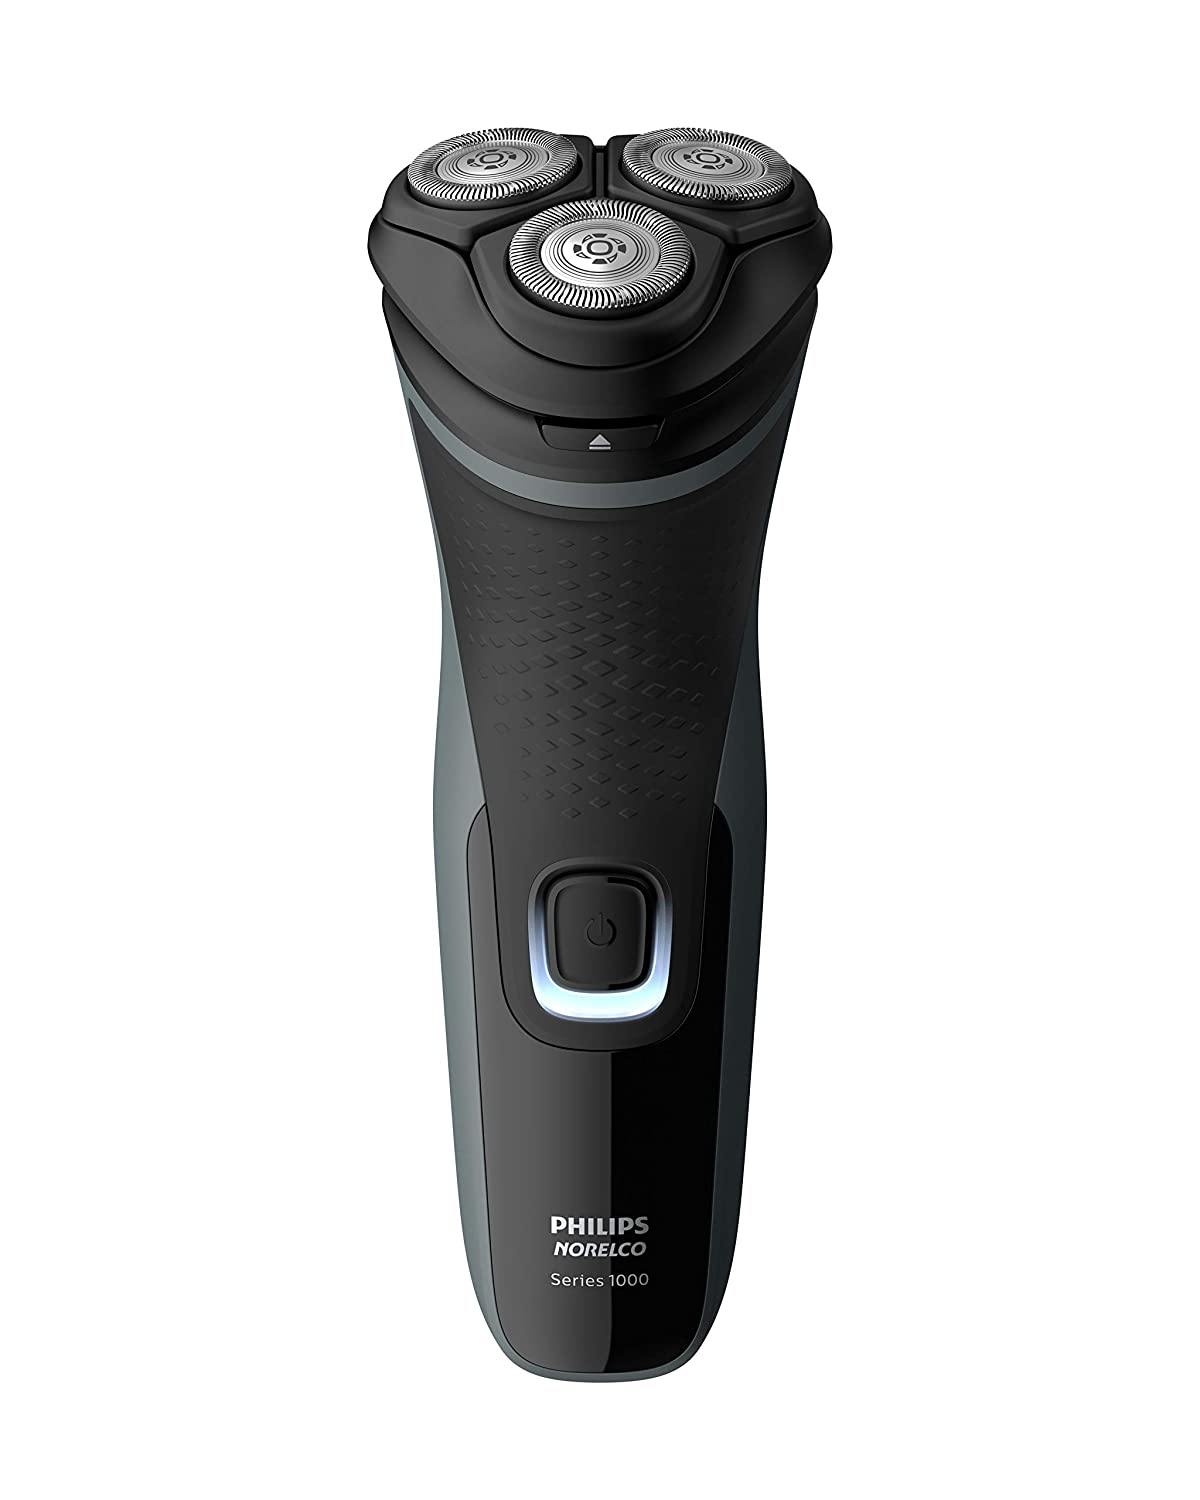 Philips Norelco Shaver 2300 S1211/81